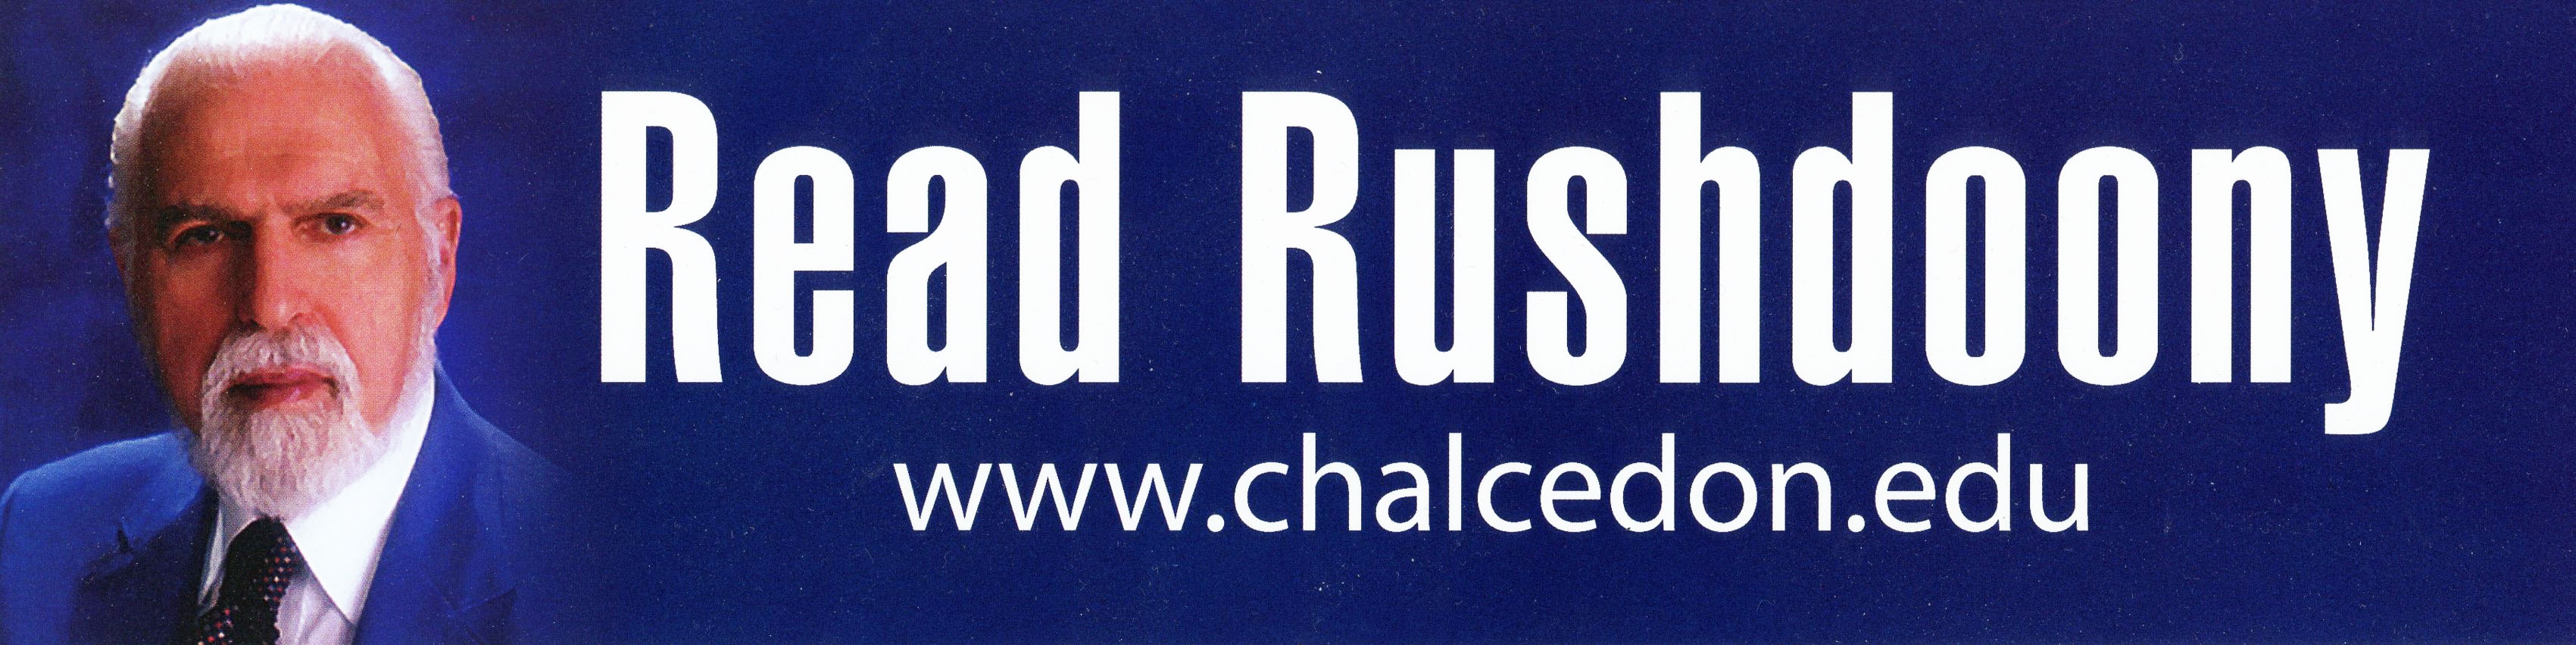 Read Rushdoony Bumper Sticker (POSTAGE INCLUDED)